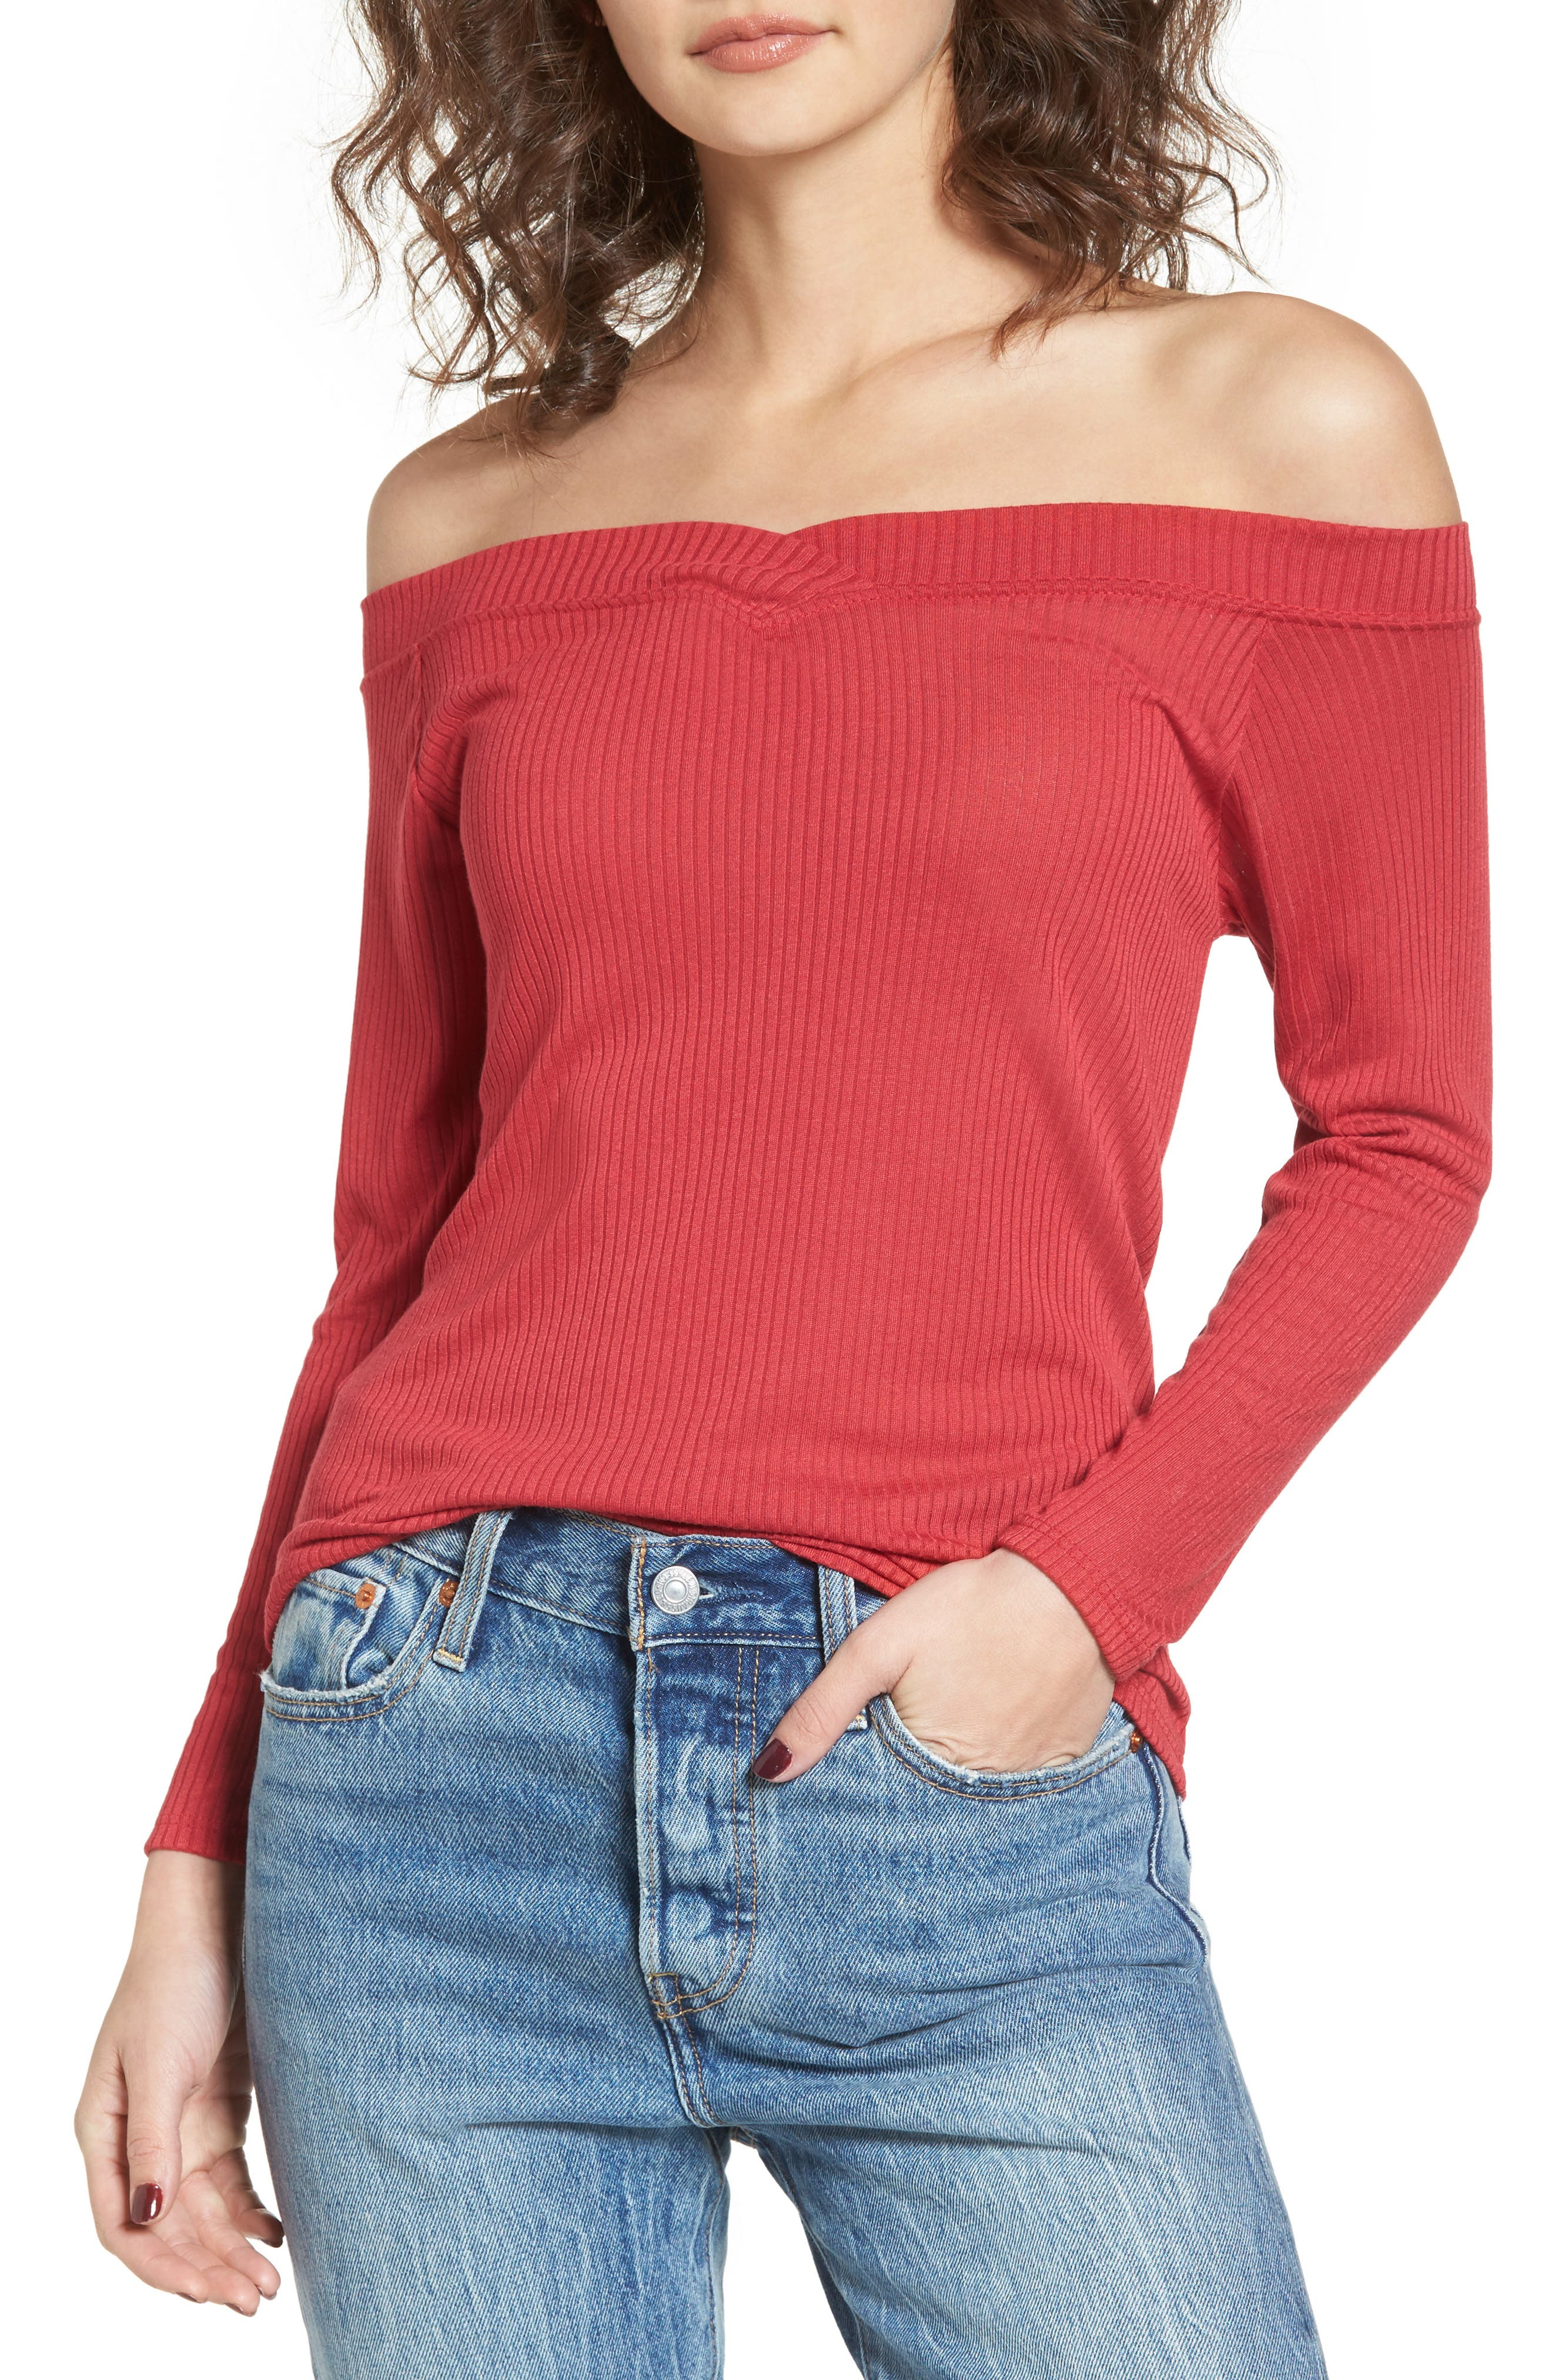 Union Street Off the Shoulder Top,                         Main,                         color, Red